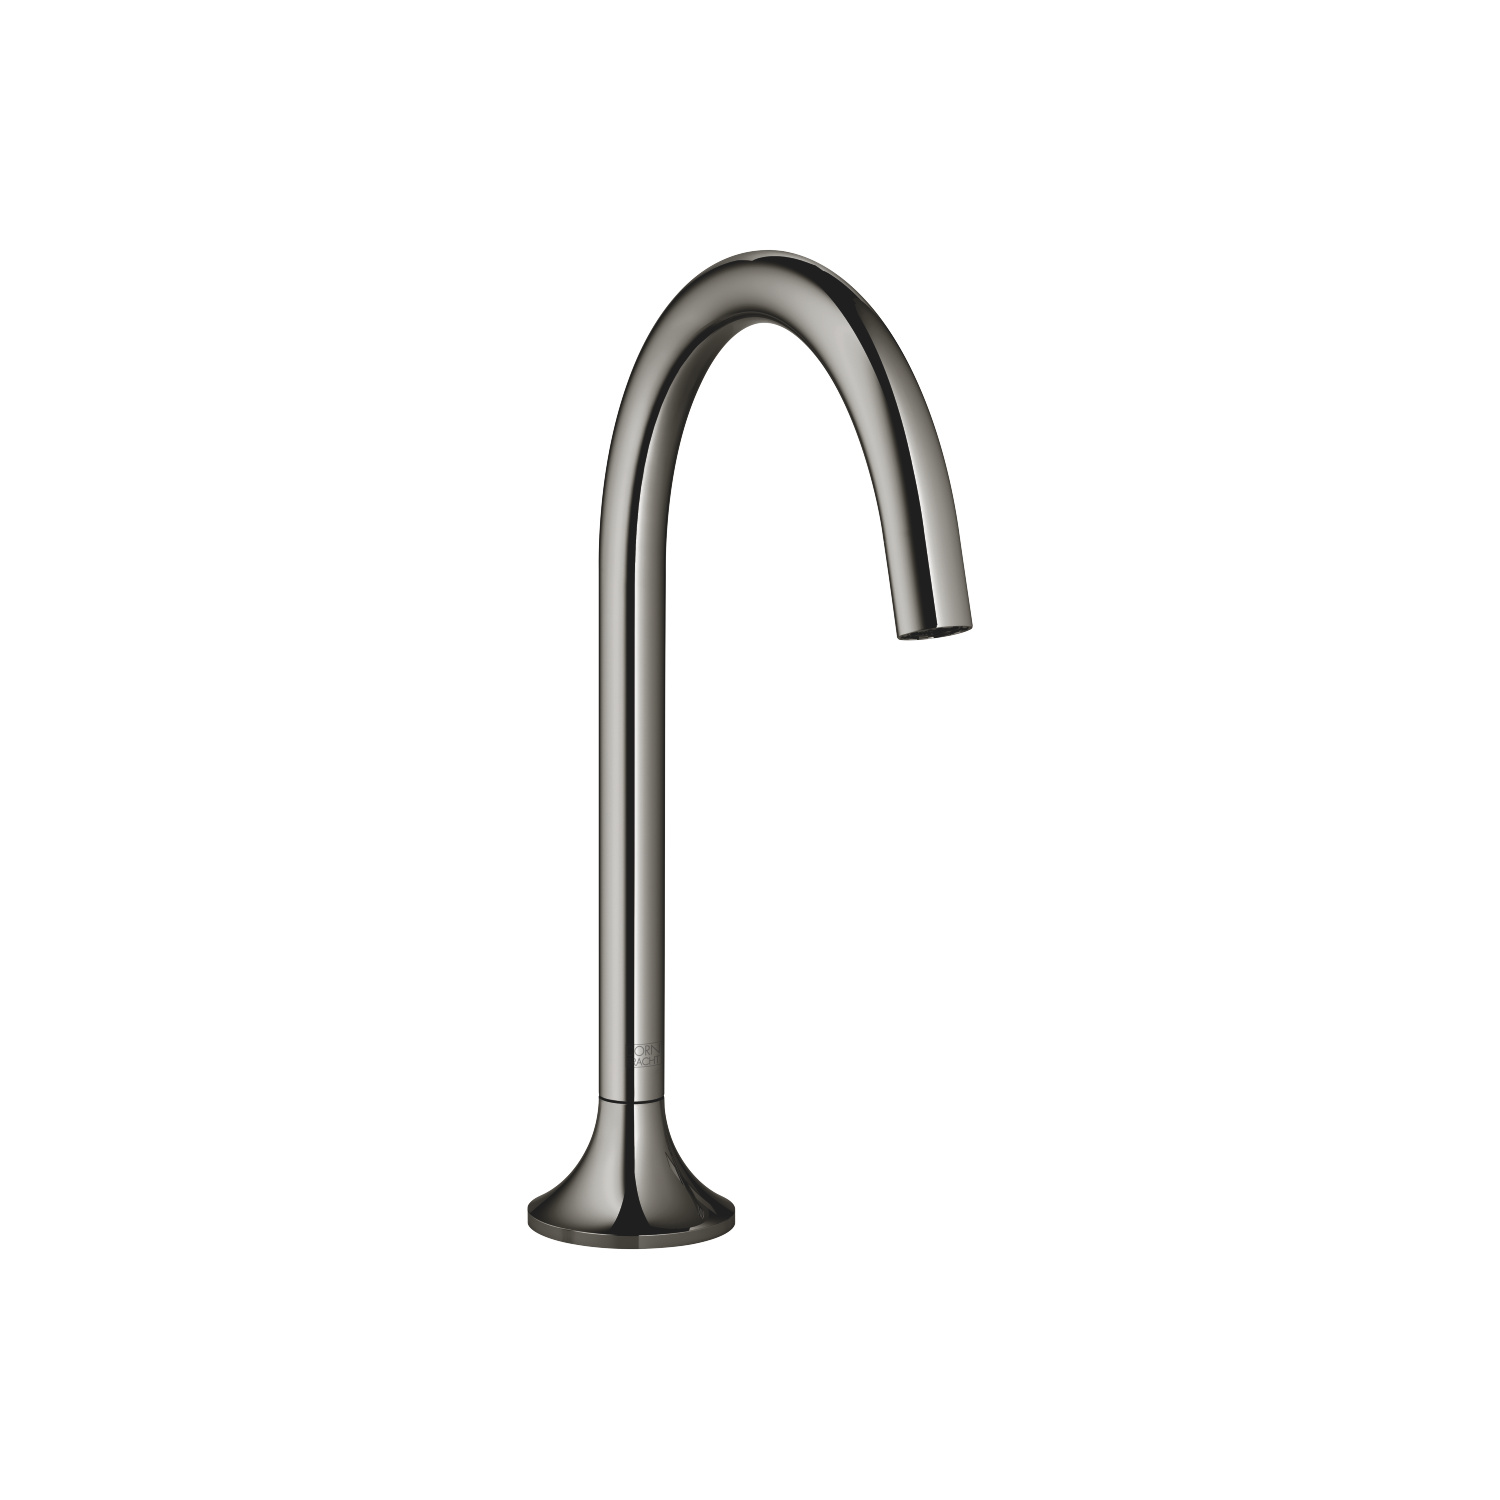 eSET Touchfree Basin mixer without pop-up waste with temperature setting - platinum